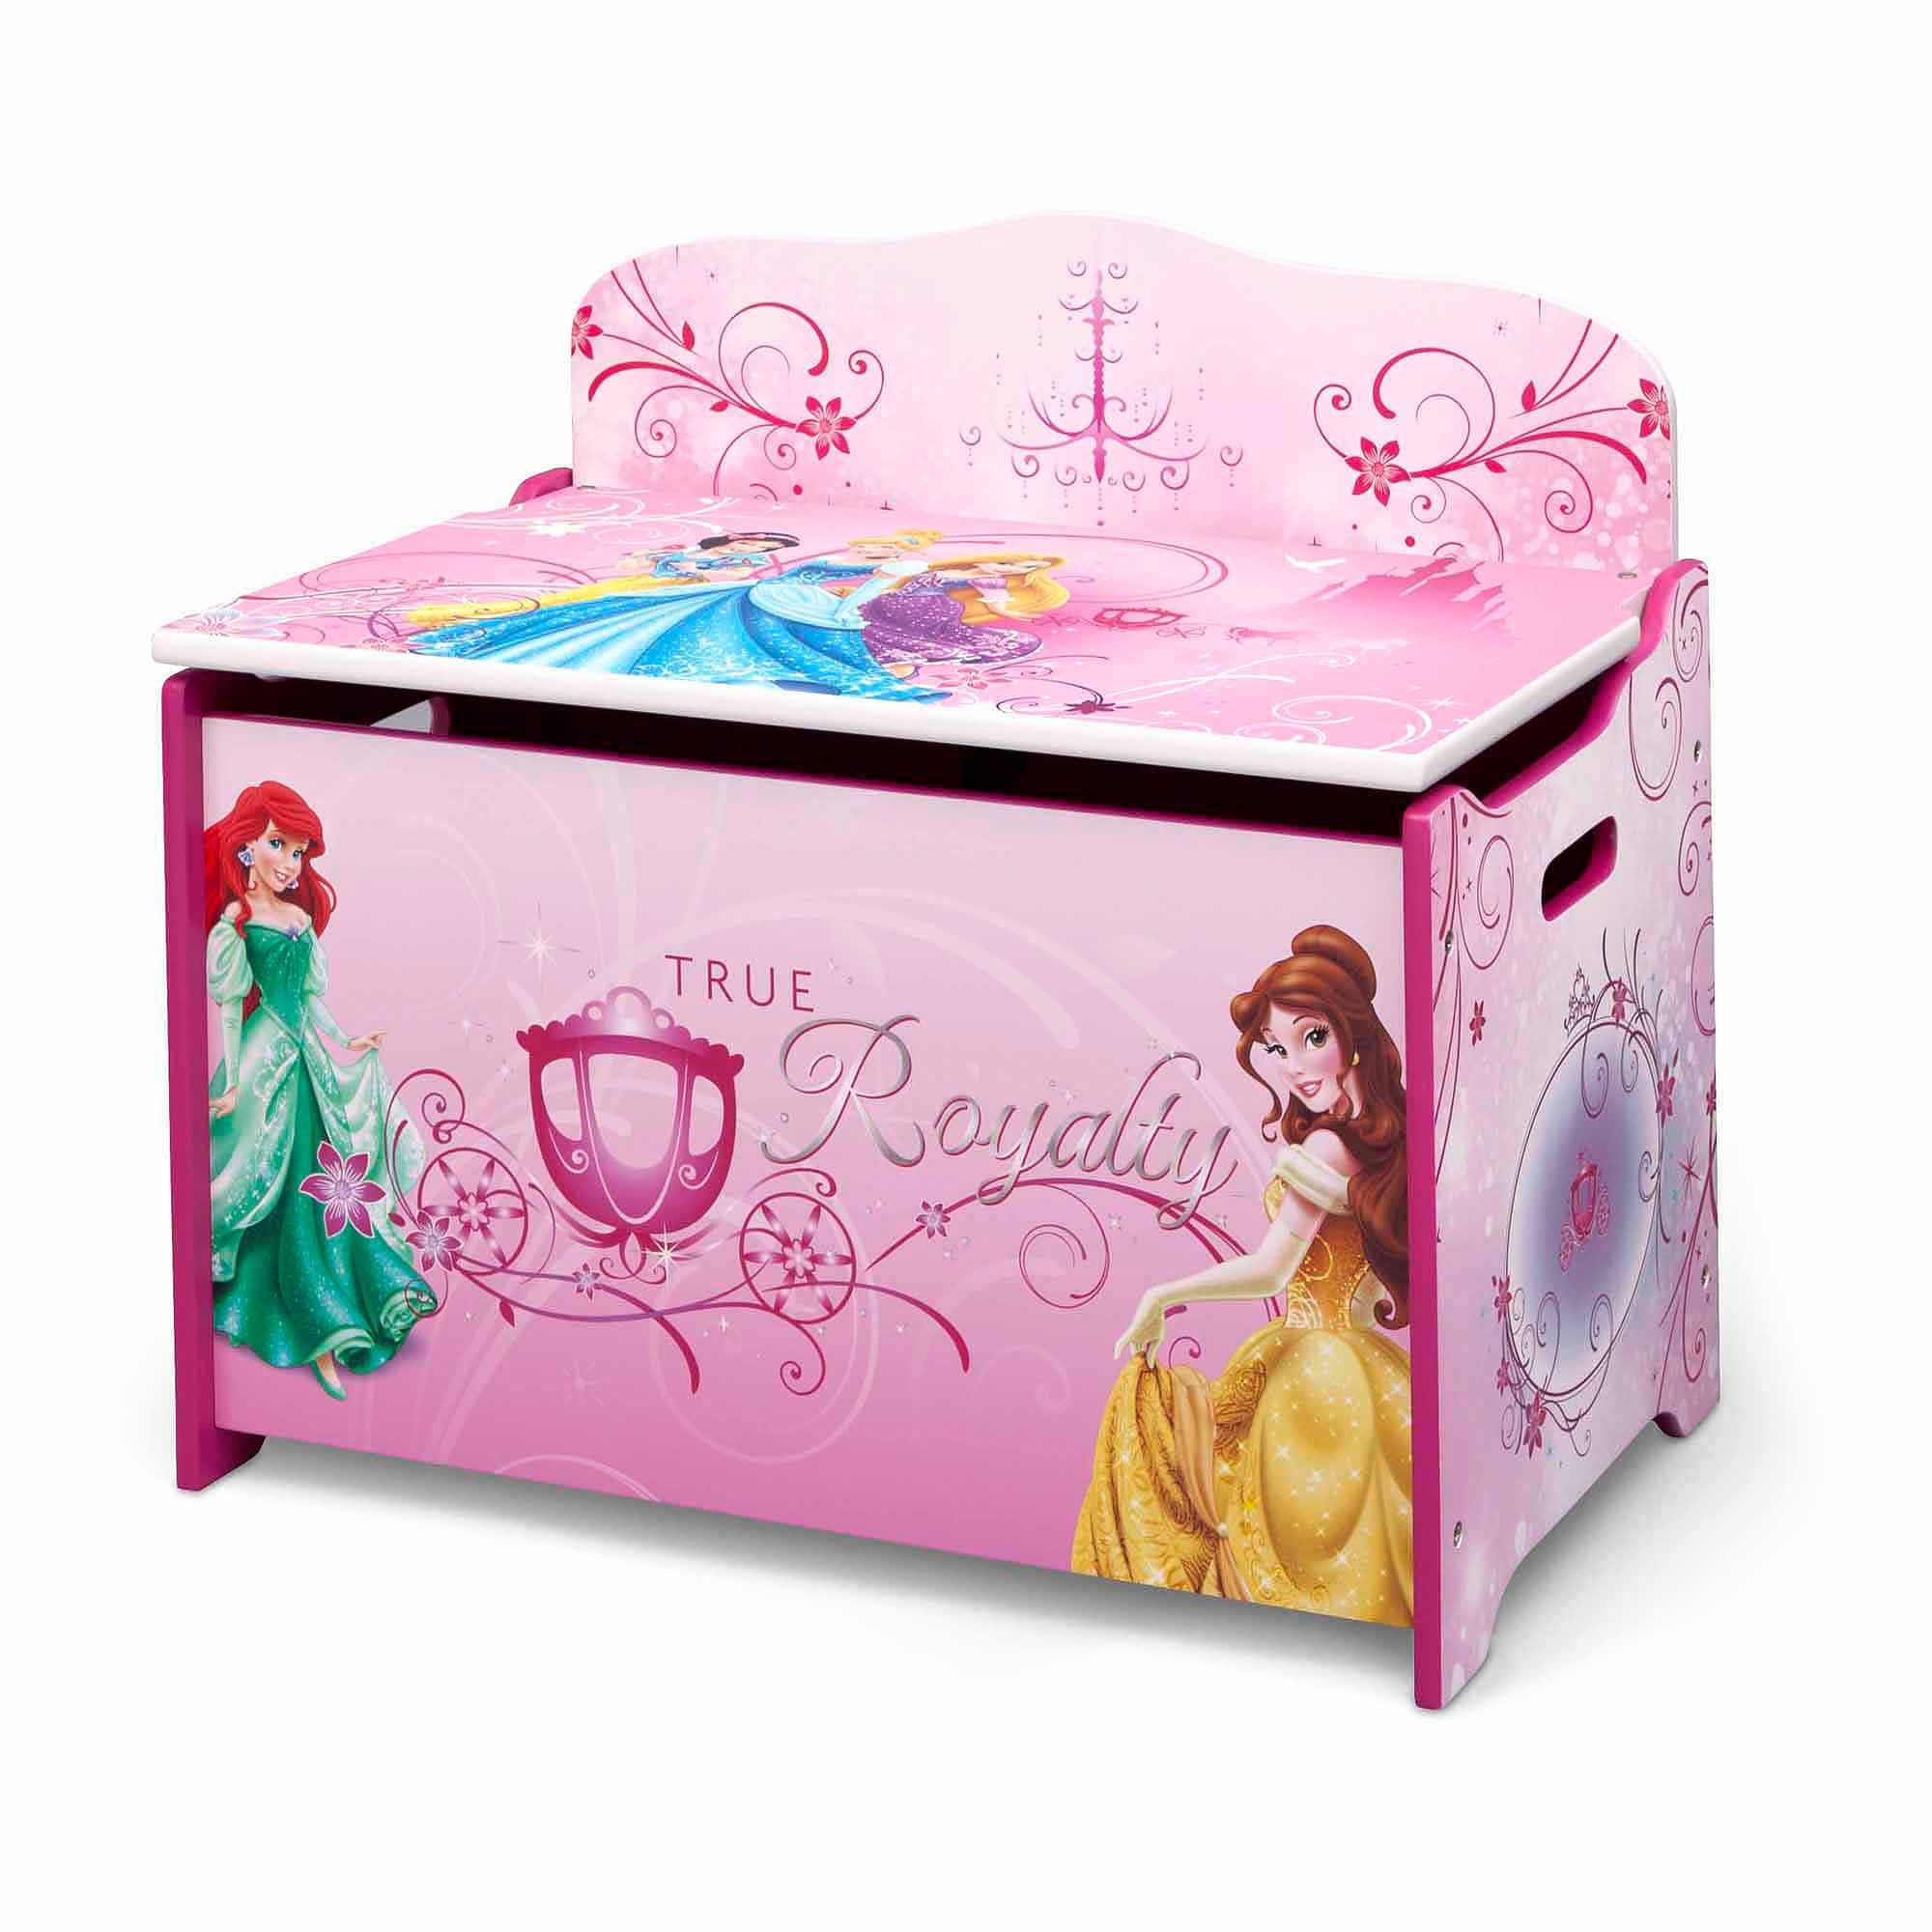 Disney Princess Deluxe Toy Box Walmart